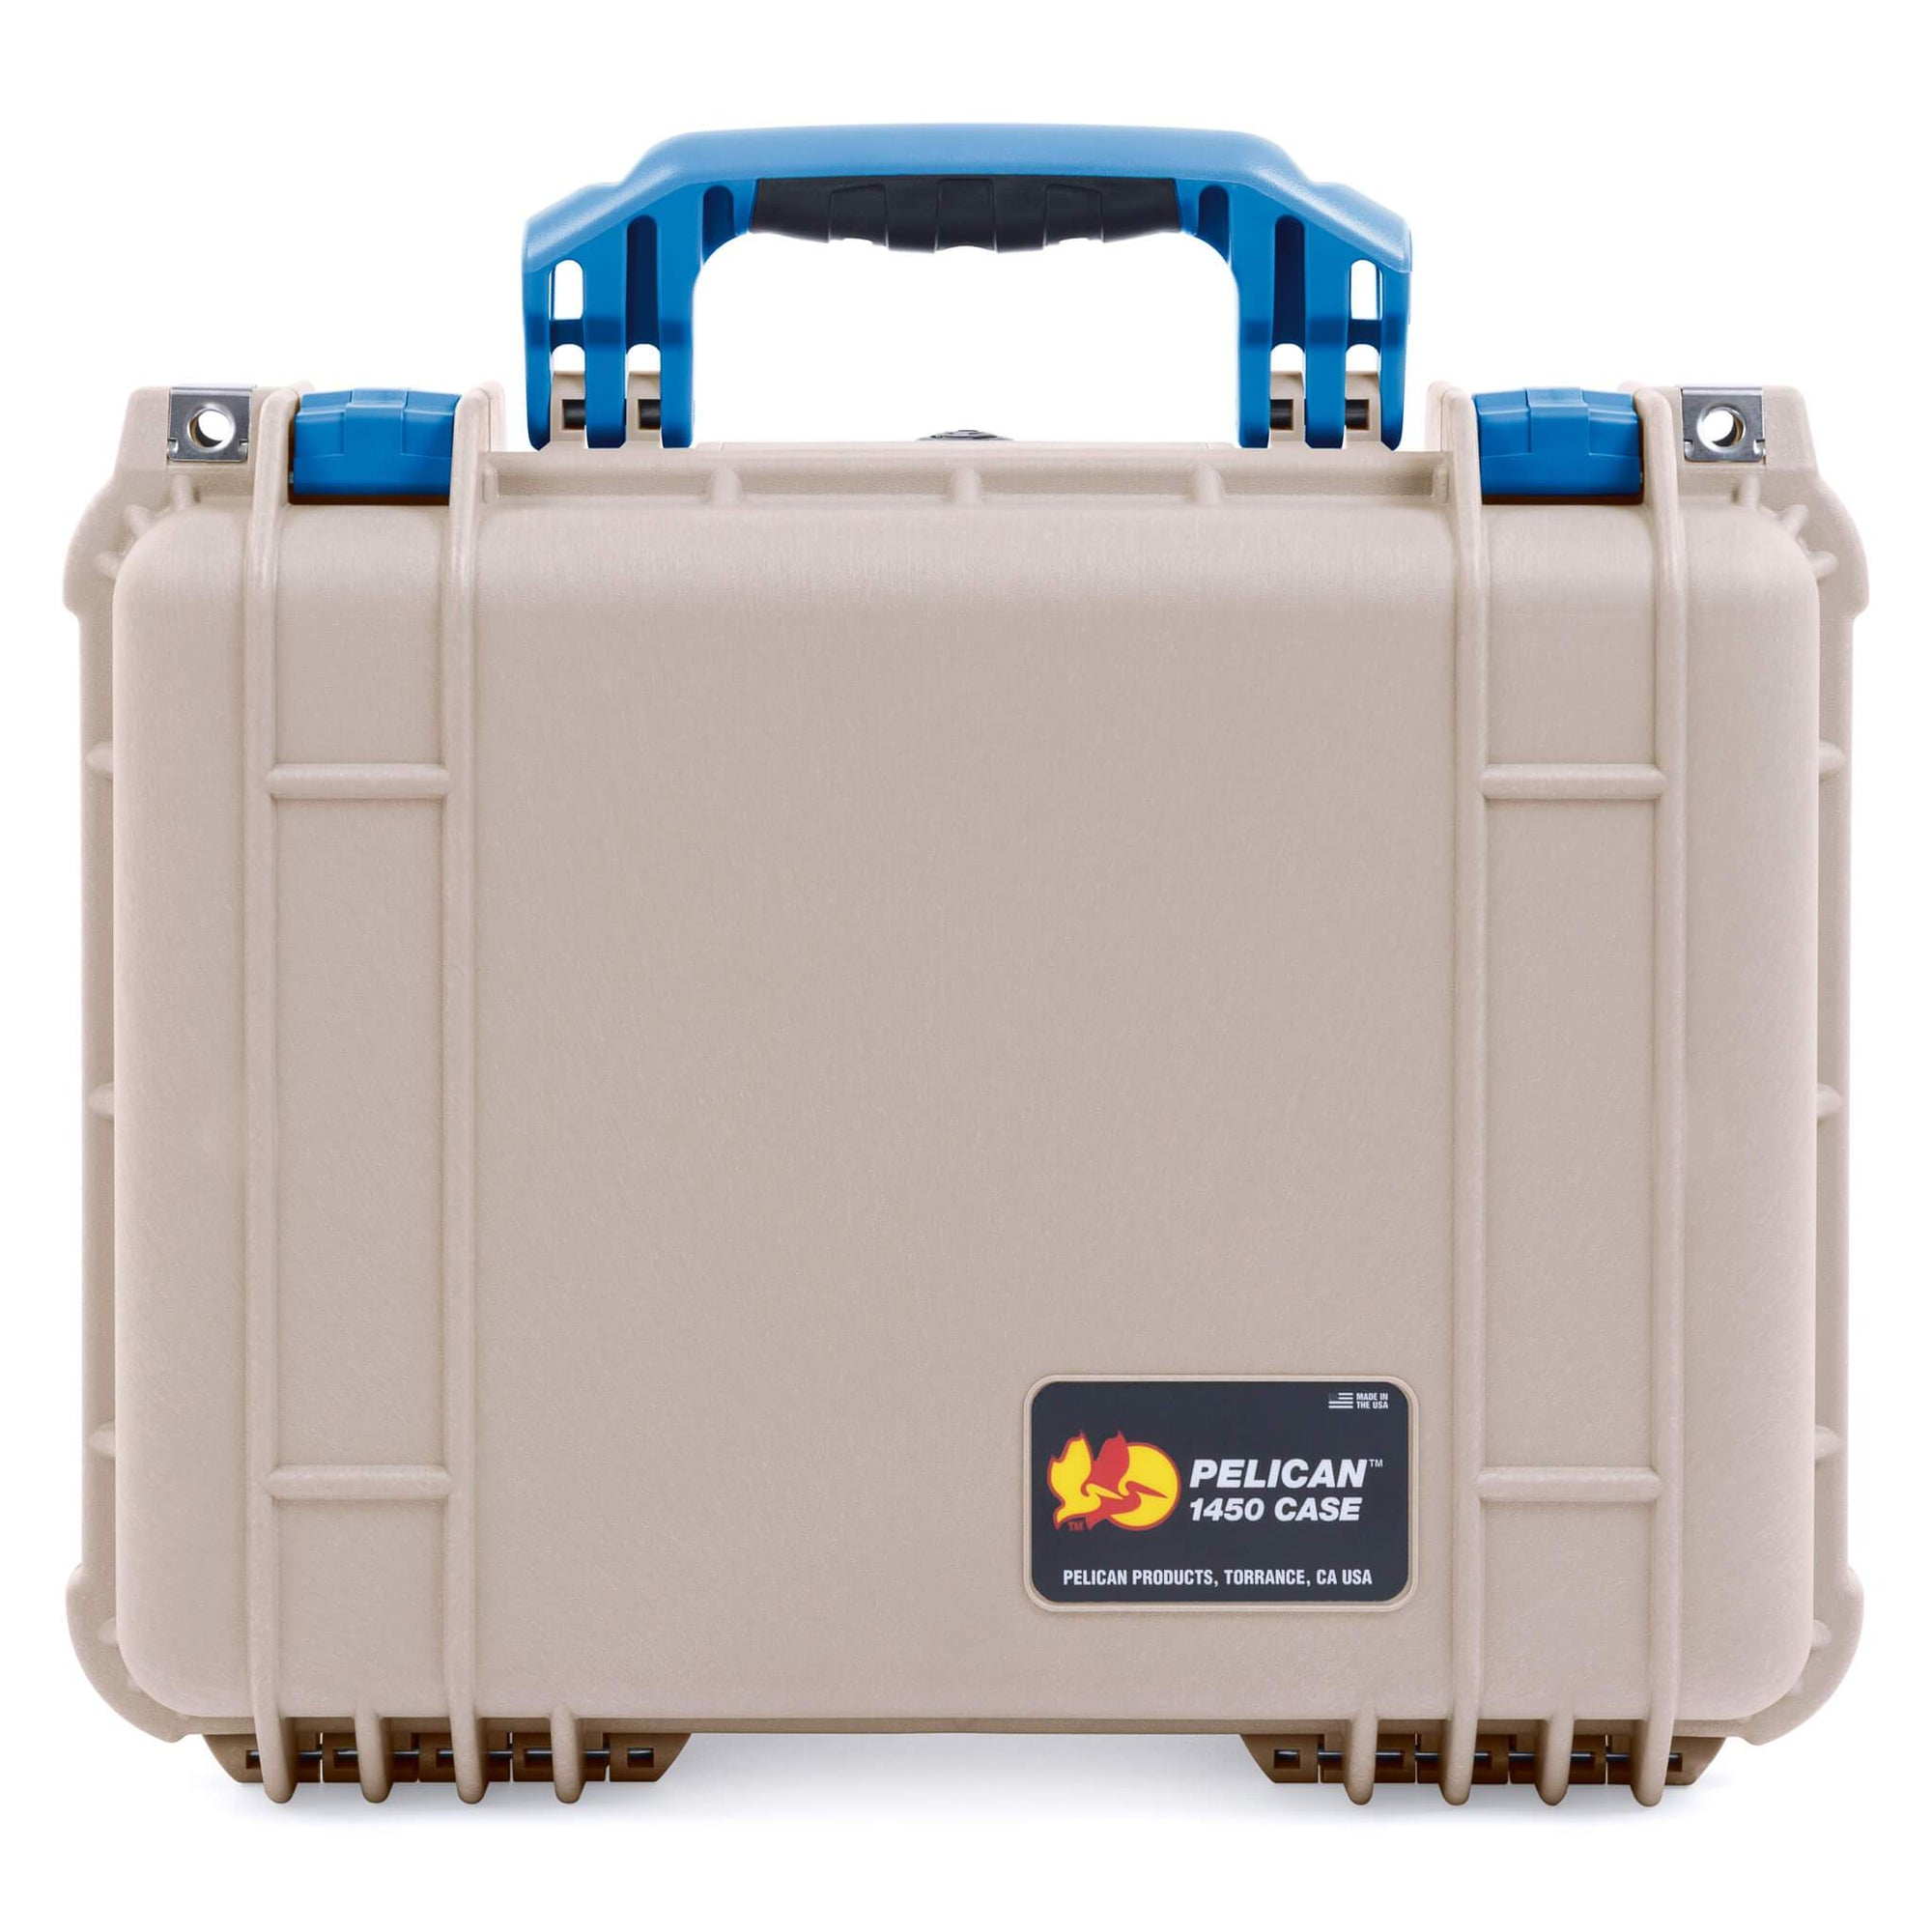 Pelican 1450 Case, Desert Tan with Blue Handle & Latches